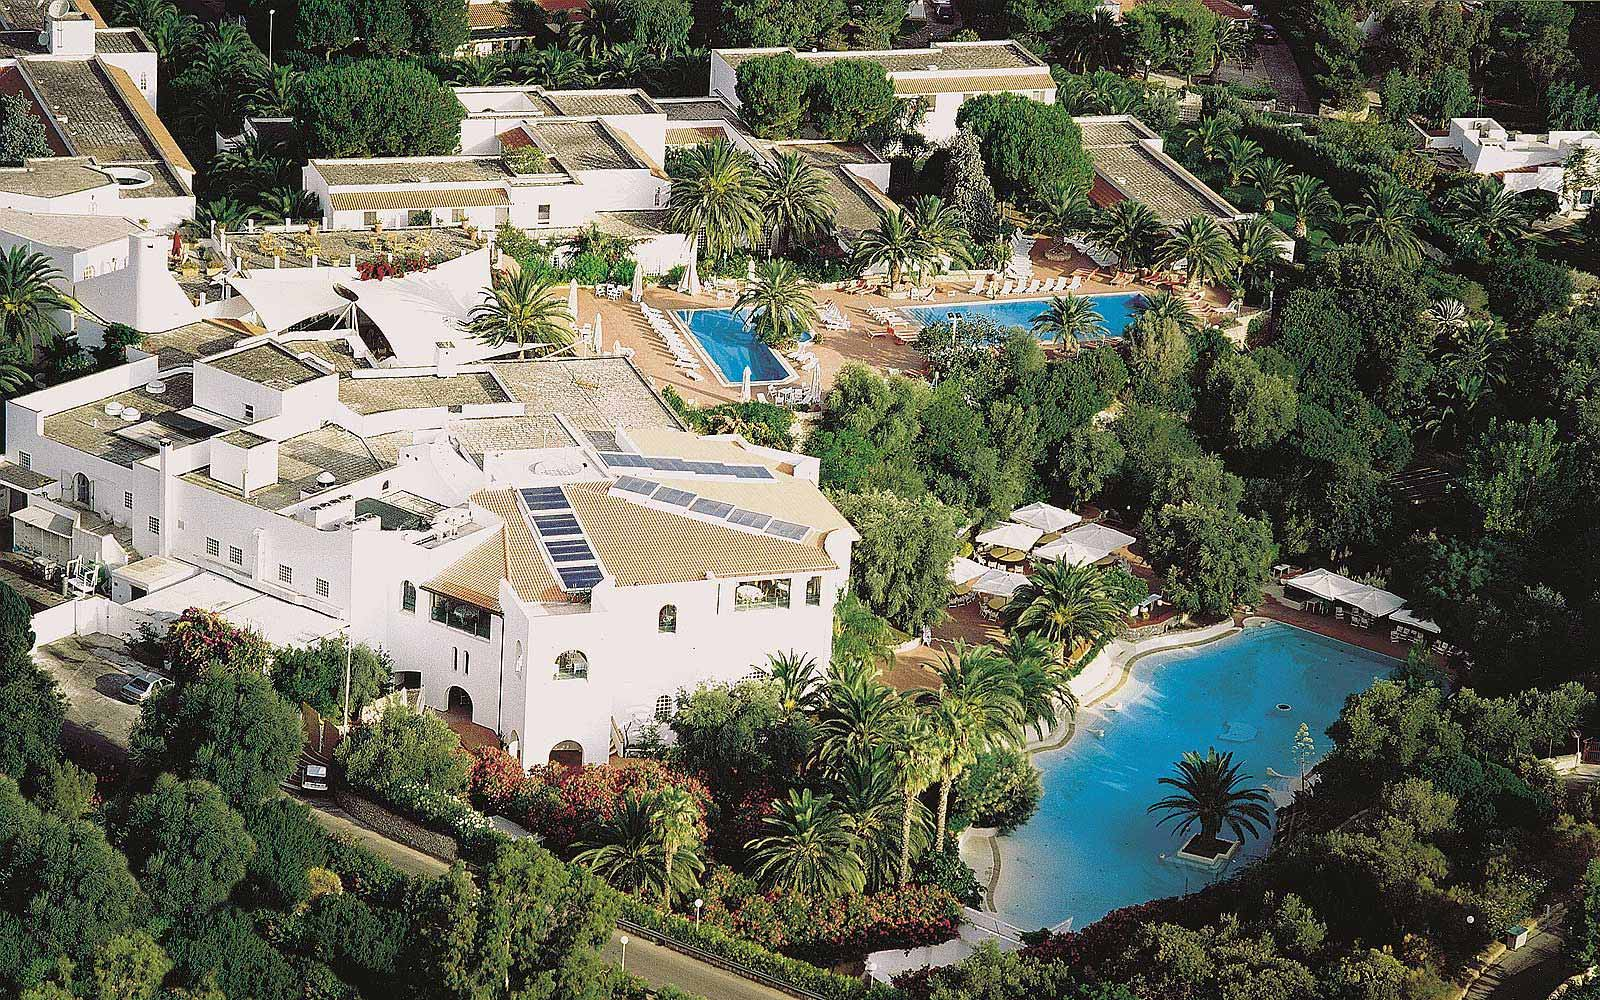 Panoramic view of the Ostuni Rosa Marina Resort